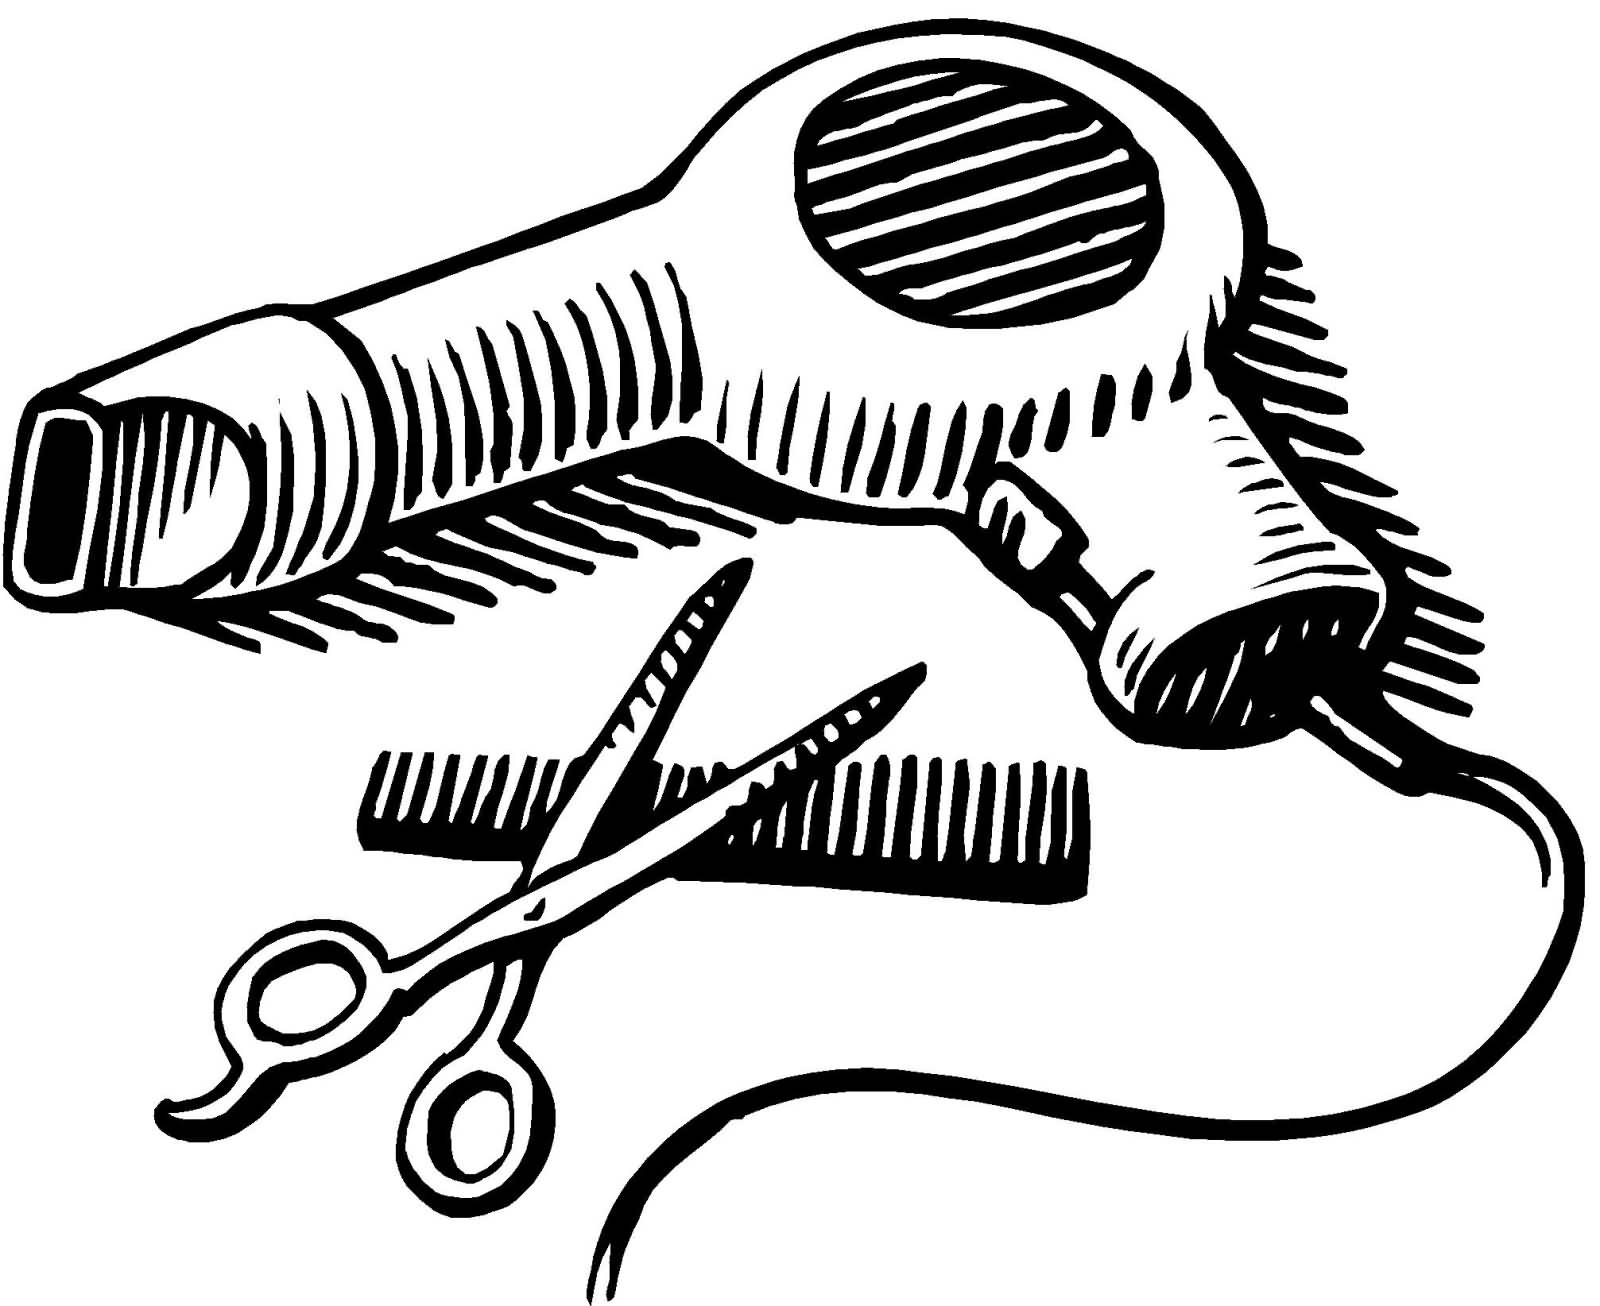 Dryer clipart hair dryer. Blow and scissors png